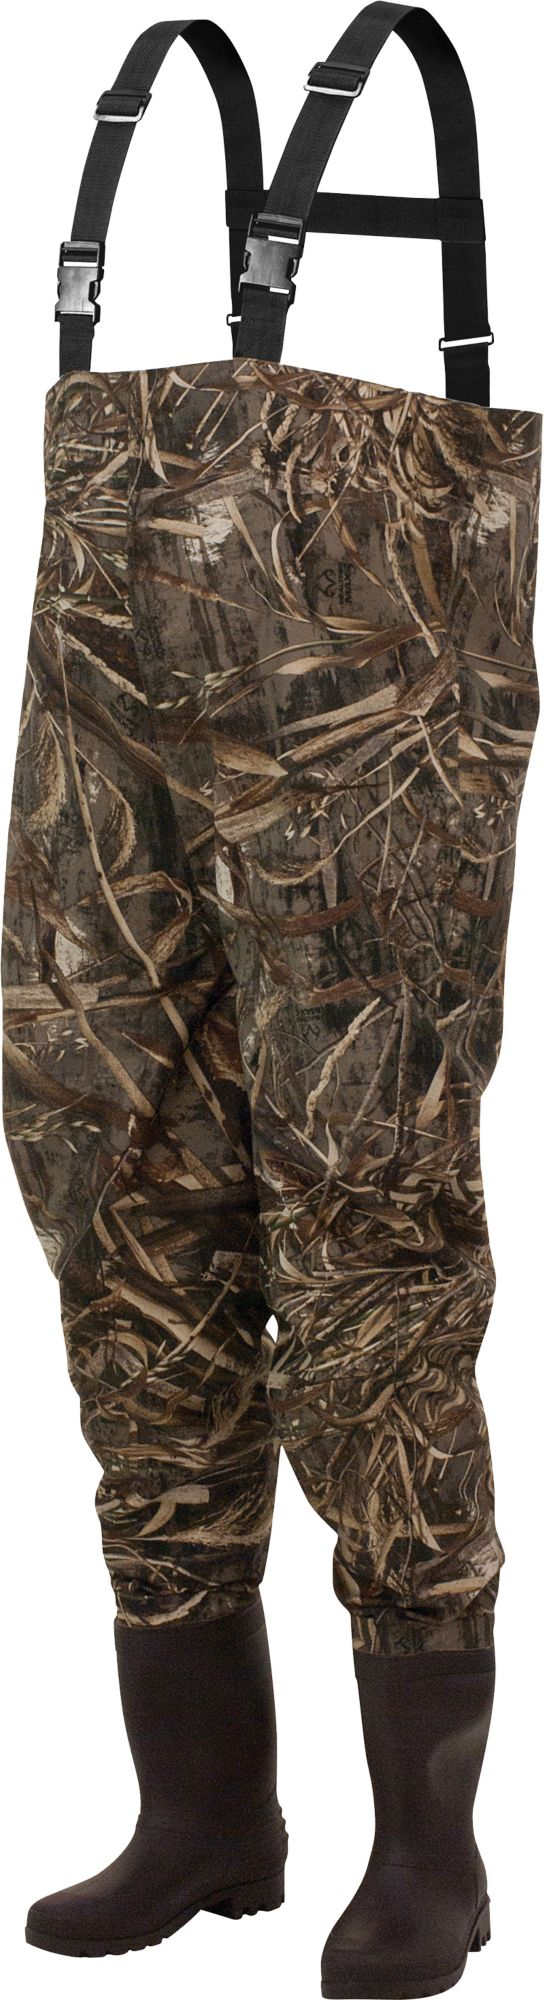 frogg toggs Rana II Camouflage Chest Waders, Men's, Size: 10, Max-5